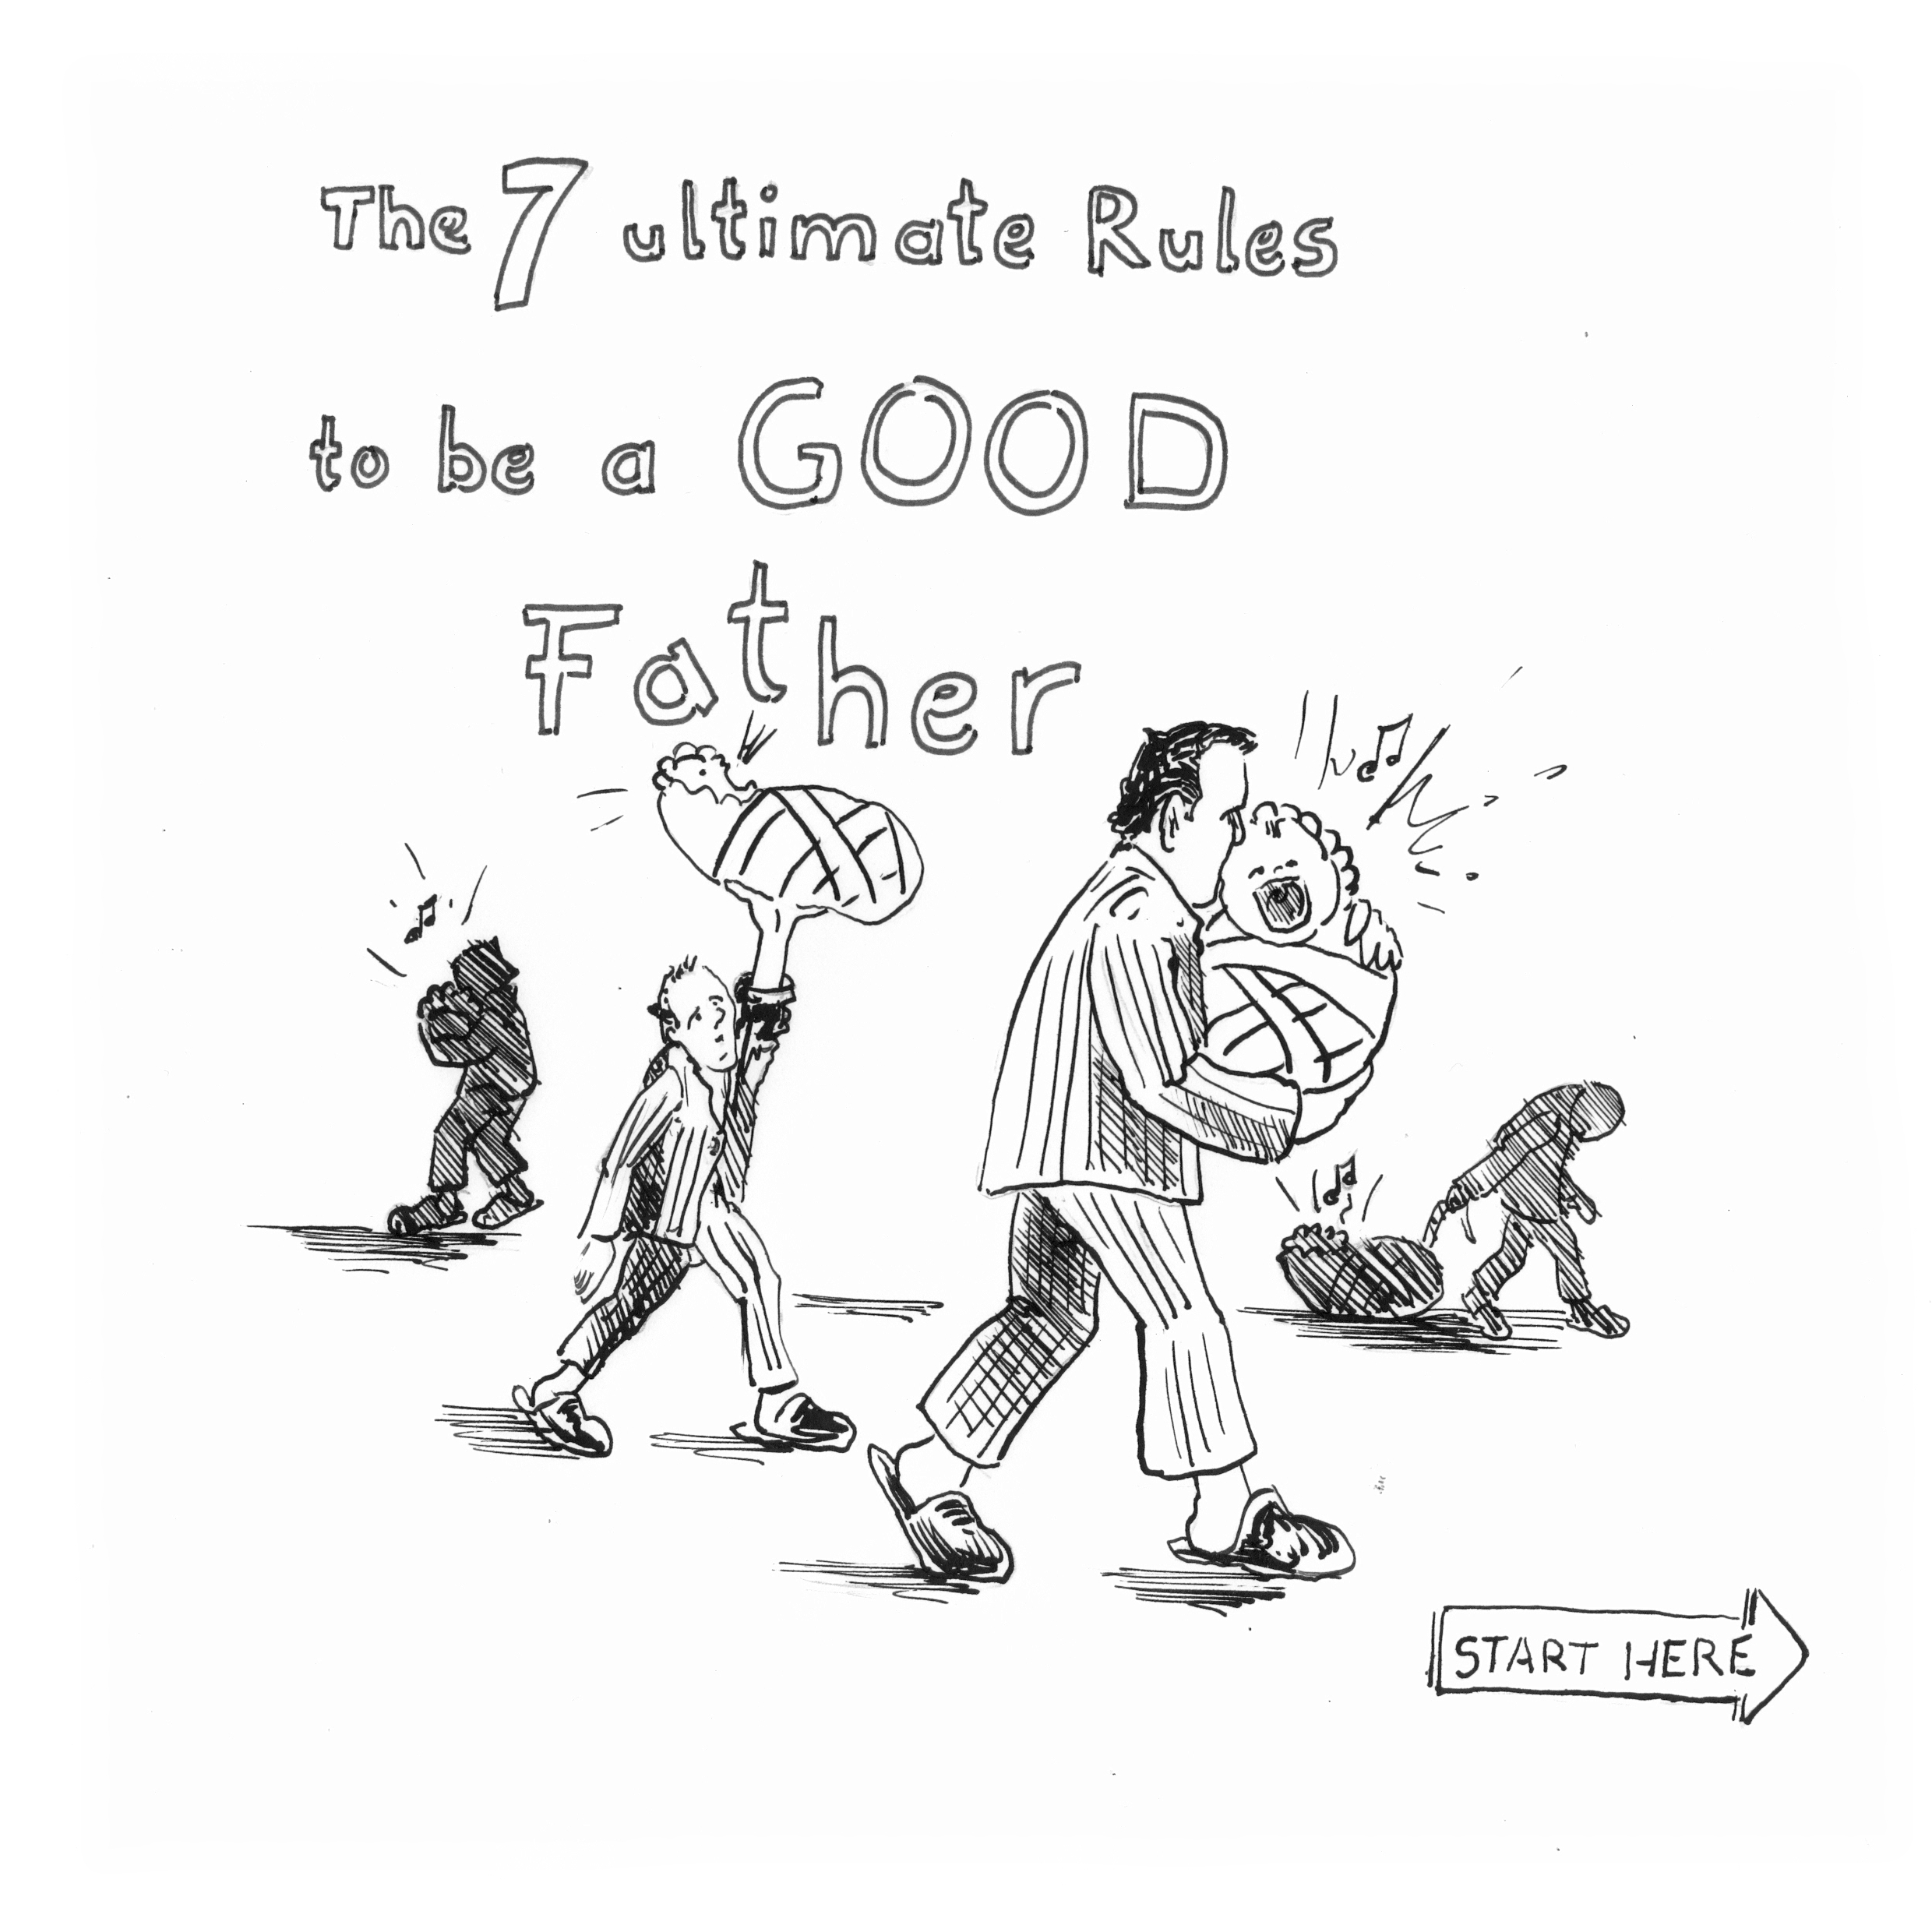 to be a good father, Illustration von HAAG Kommunikationsdesign Webdesign Grafikdesign